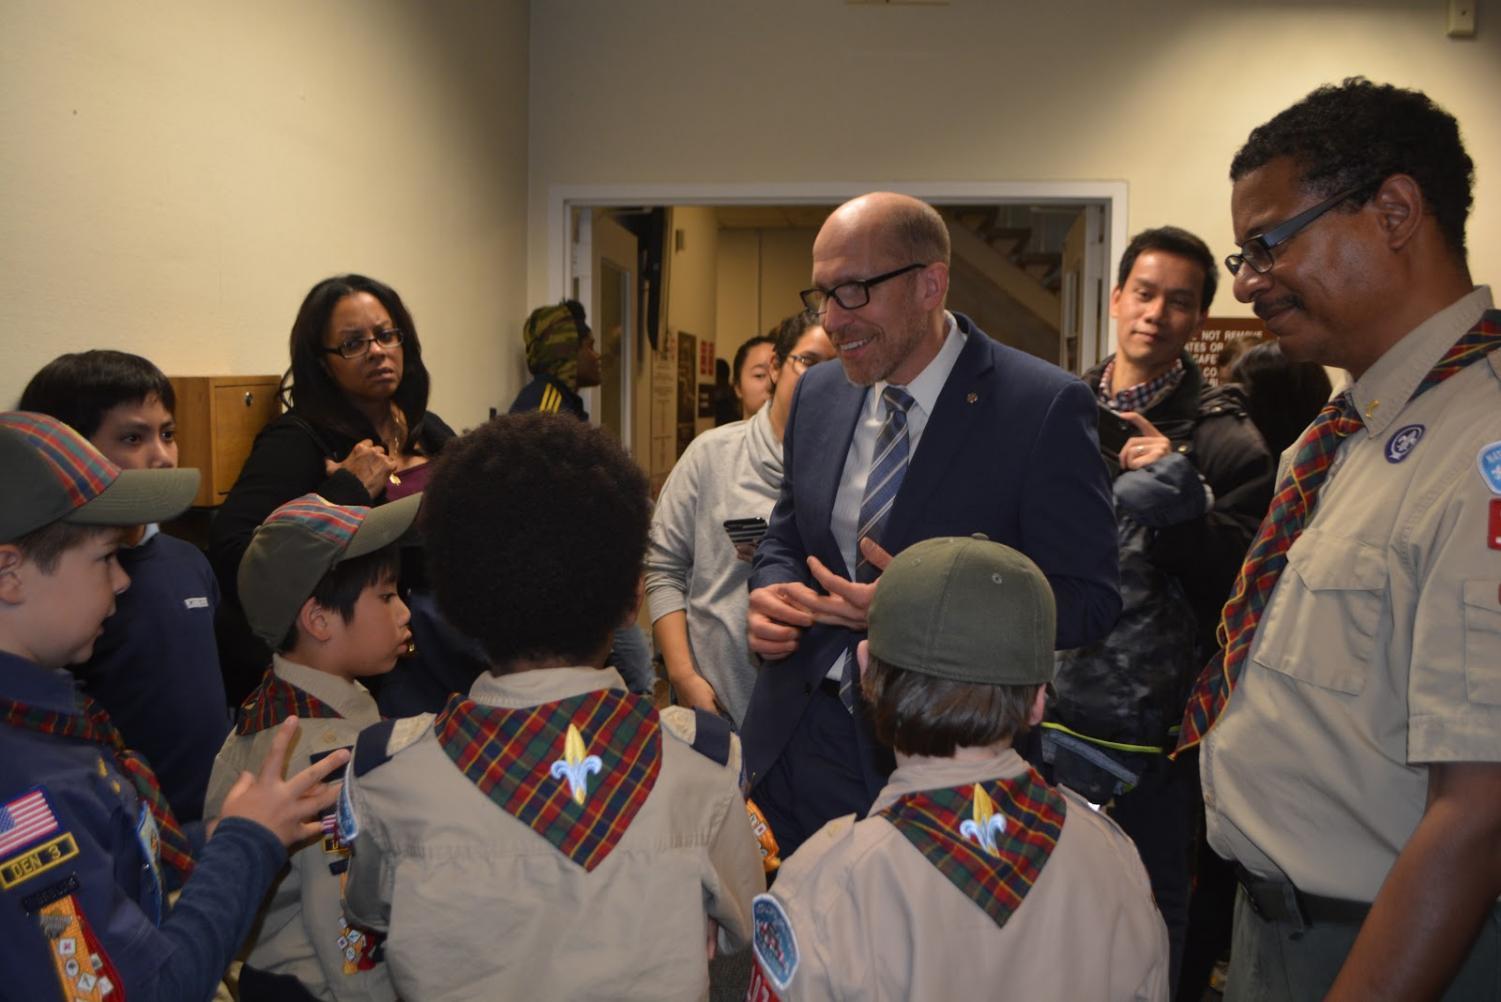 Councilmember Tom Hucker speaks with a group of young boy scouts. Tom Hucker (District 5), is our area's representative on the Montgomery County Council. He represents the communities of Briggs Chaney, Burnt Mills, Burtonsville, Calverton, Cloverly, Colesville, Fairland, Four Corners, Hillandale, Lyttonsville, Silver Spring, Takoma Park, and White Oak.